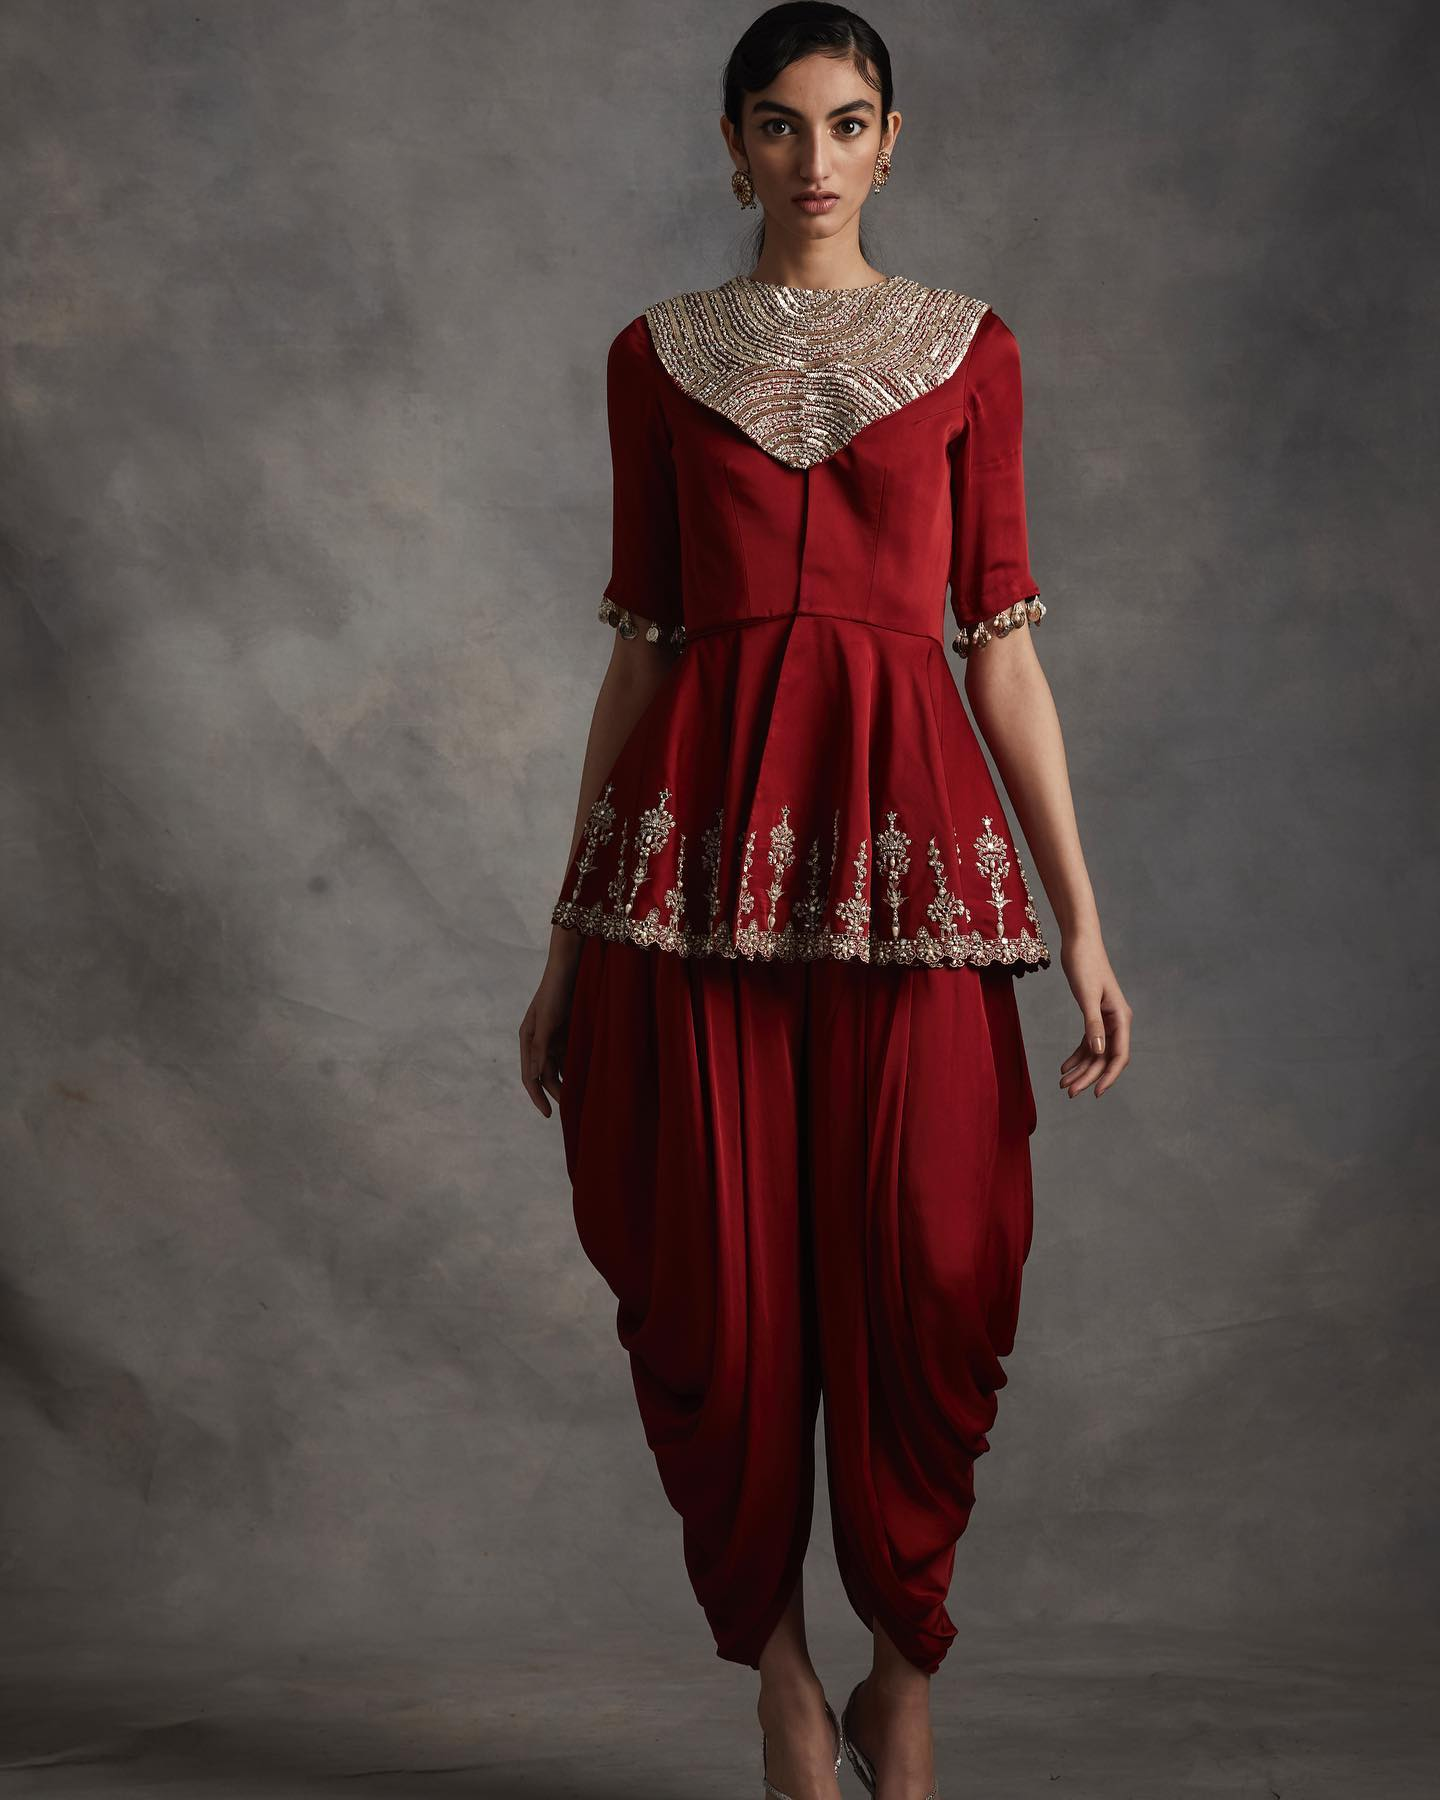 SUMMER ROMANCE . FESTIVE 2021 . PART 2 LOOK 10 - Red embroidered peplum jacket with pre-stitched draped dhoti pants.  . .  To place orders or for assistance please Call/WhatsApp on +91 9821497535.  2021-02-28